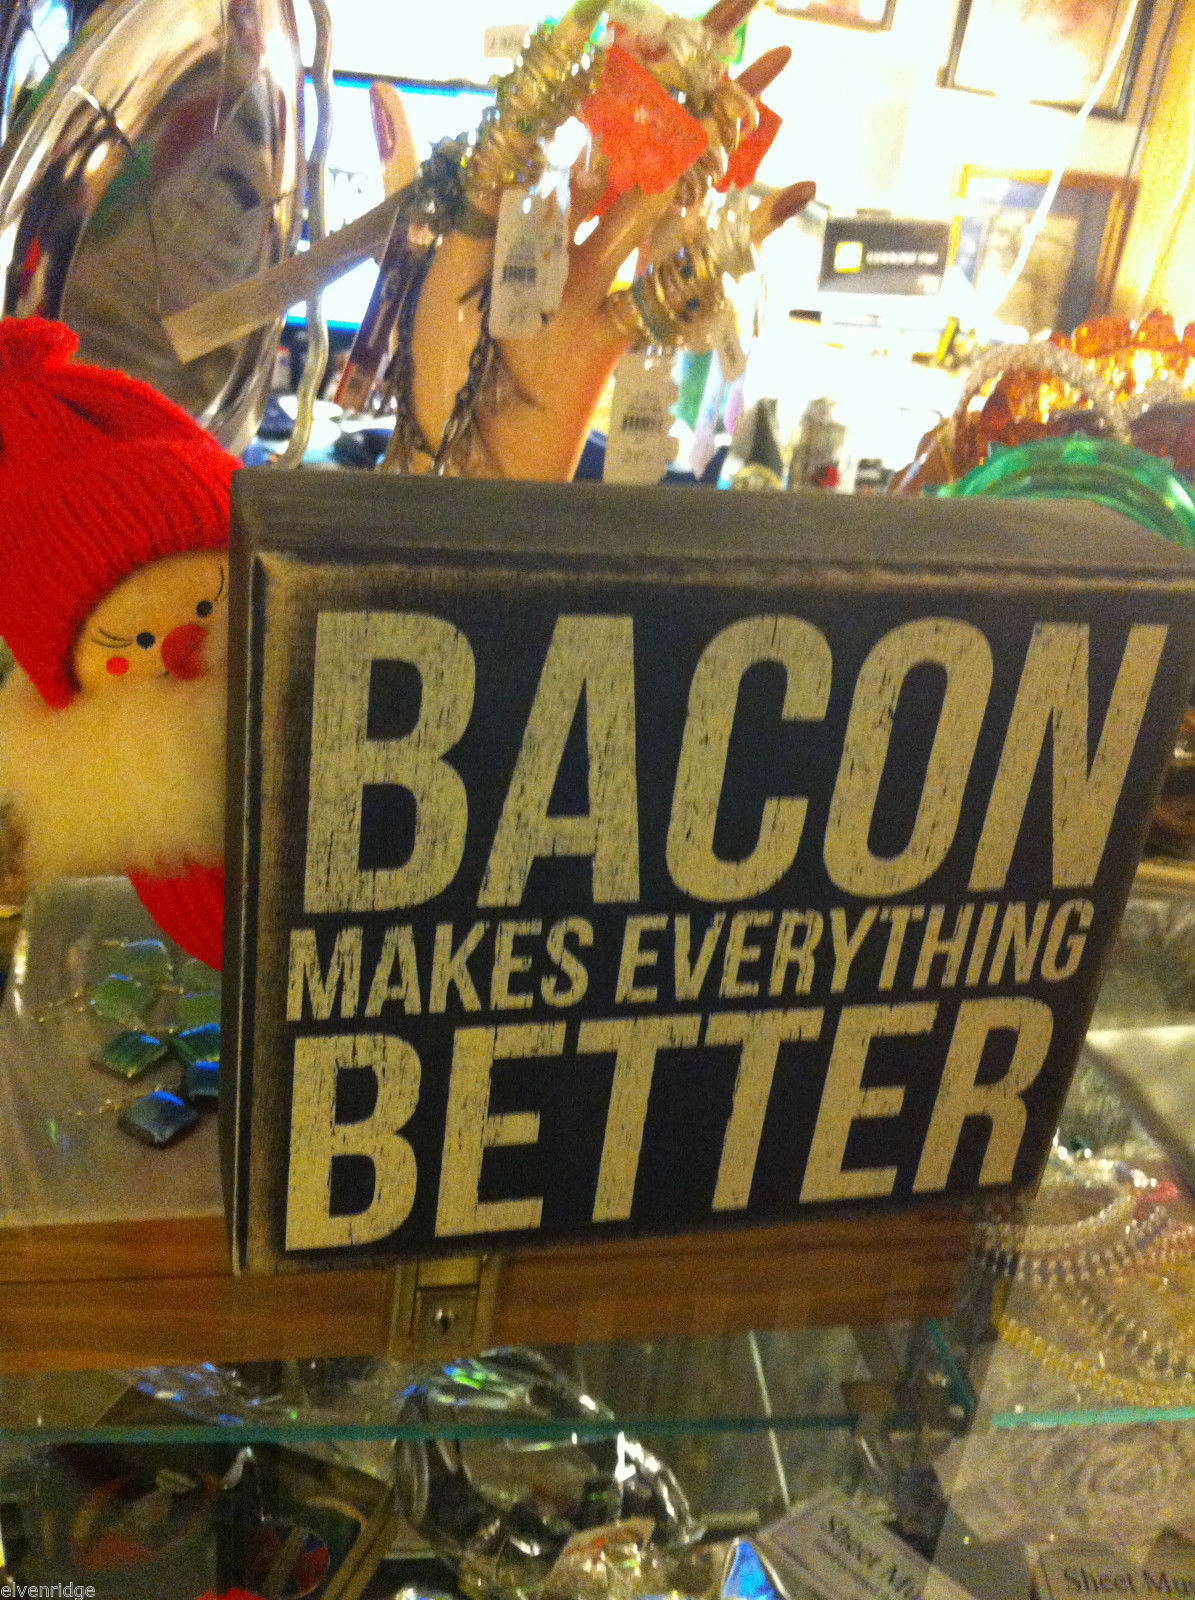 Bacon Makes Everything Better whimsical black box sign